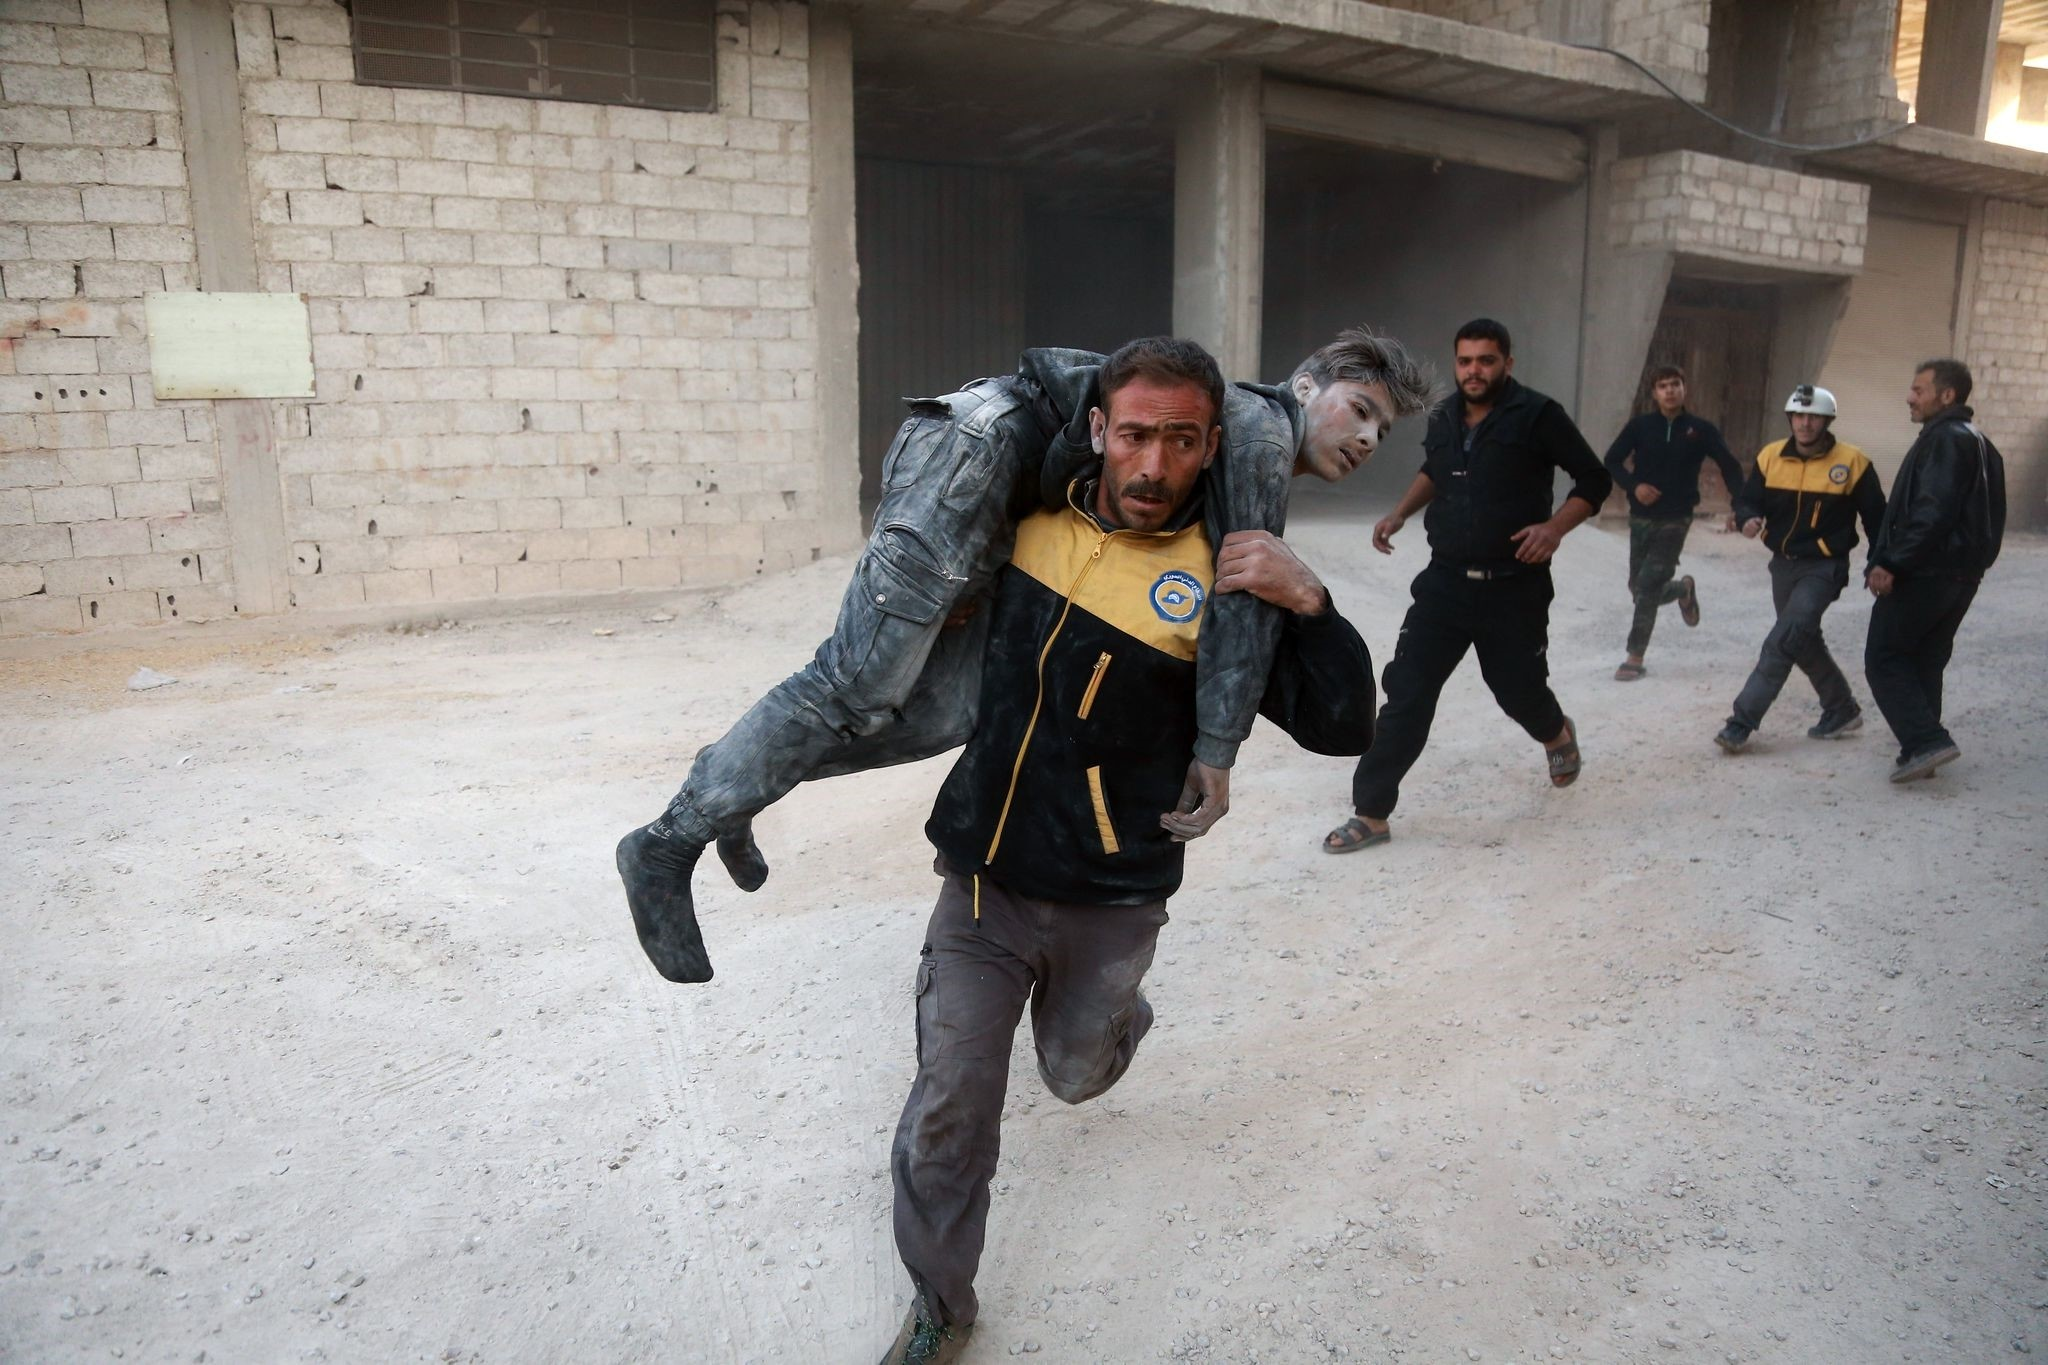 A wounded Syrian is carried by a member of the Syrian Civil Defence, known as the white helmets, to a hospital in the opposition-held besieged town of Arbin, in the eastern Ghouta region. (AFP Photo)